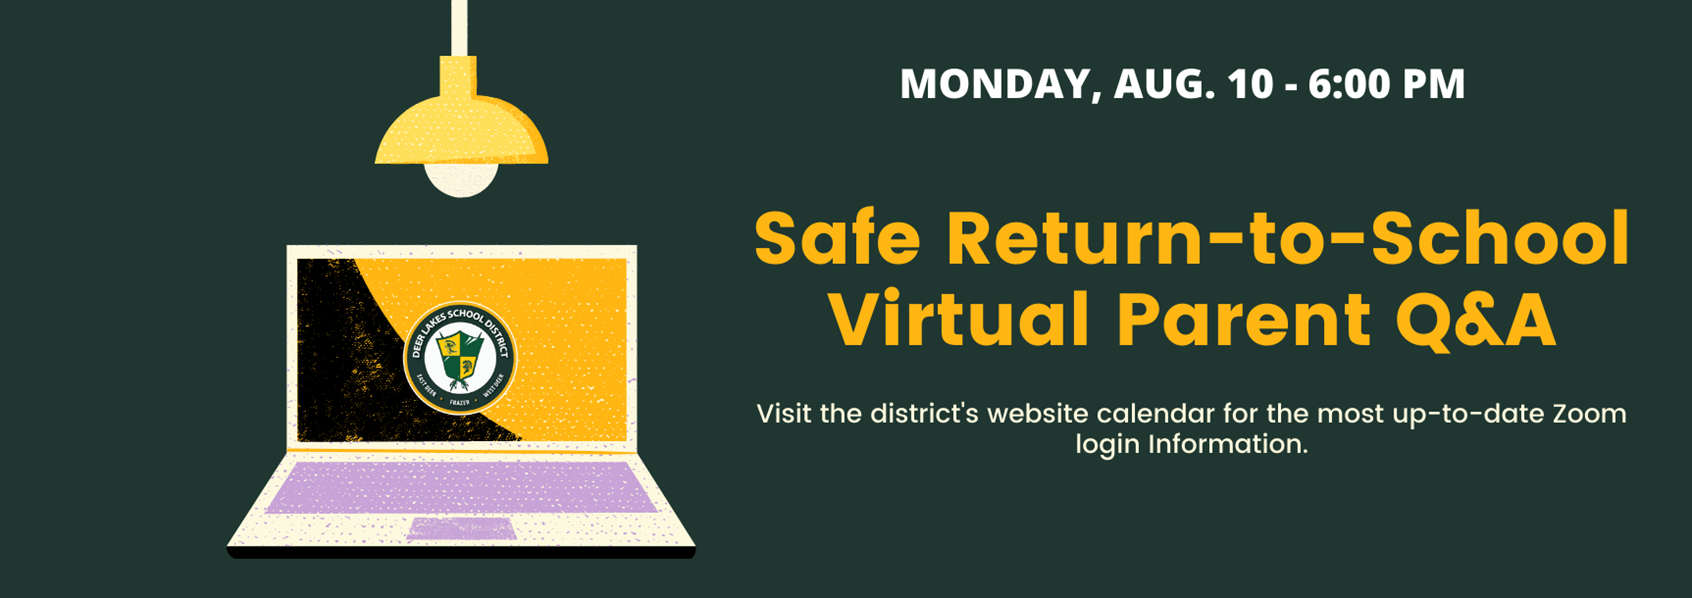 Healthy & Safe Return-to-Schools Virtual Student and Parent Q&A